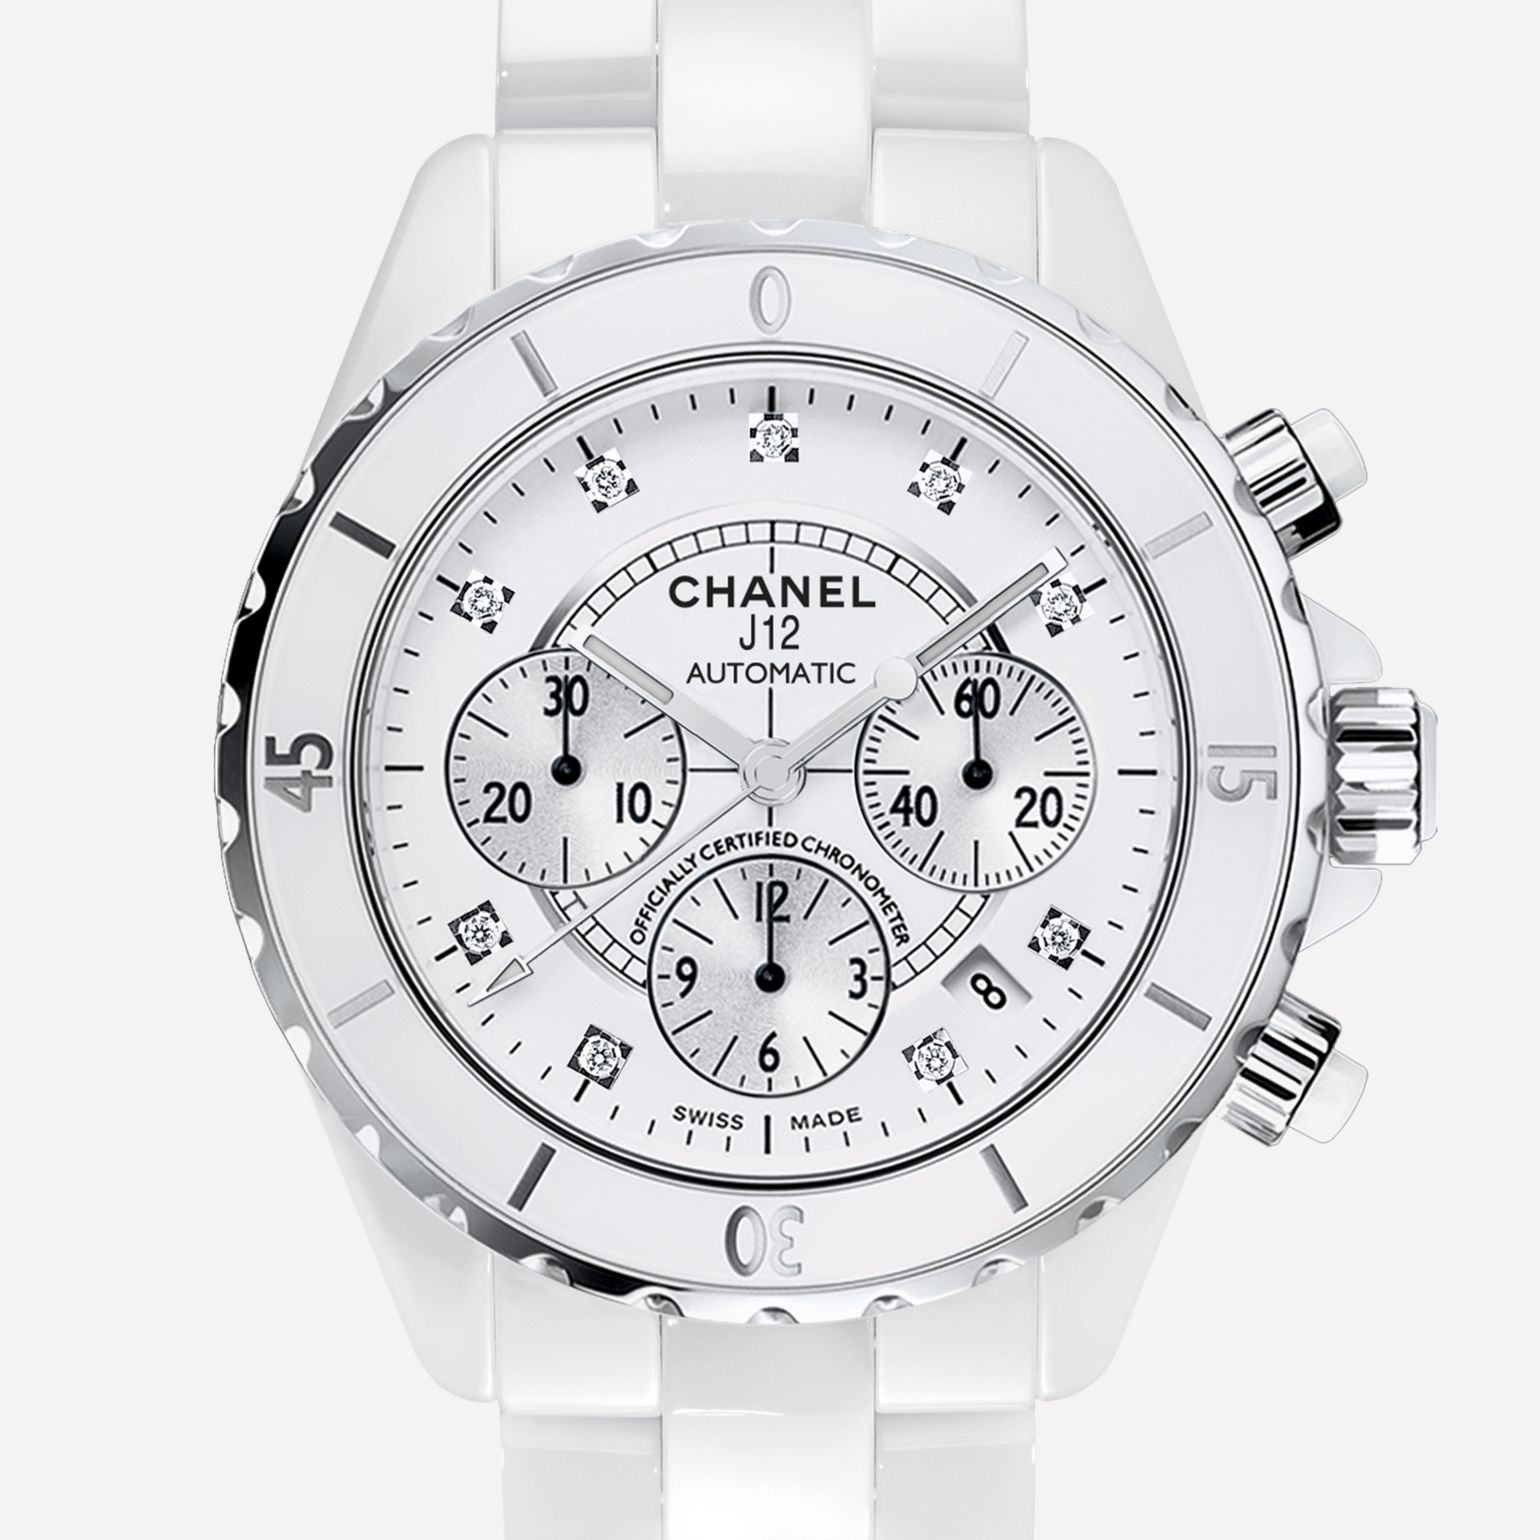 J12 CHRONOGRAPH White ceramic and steel, diamond indicators